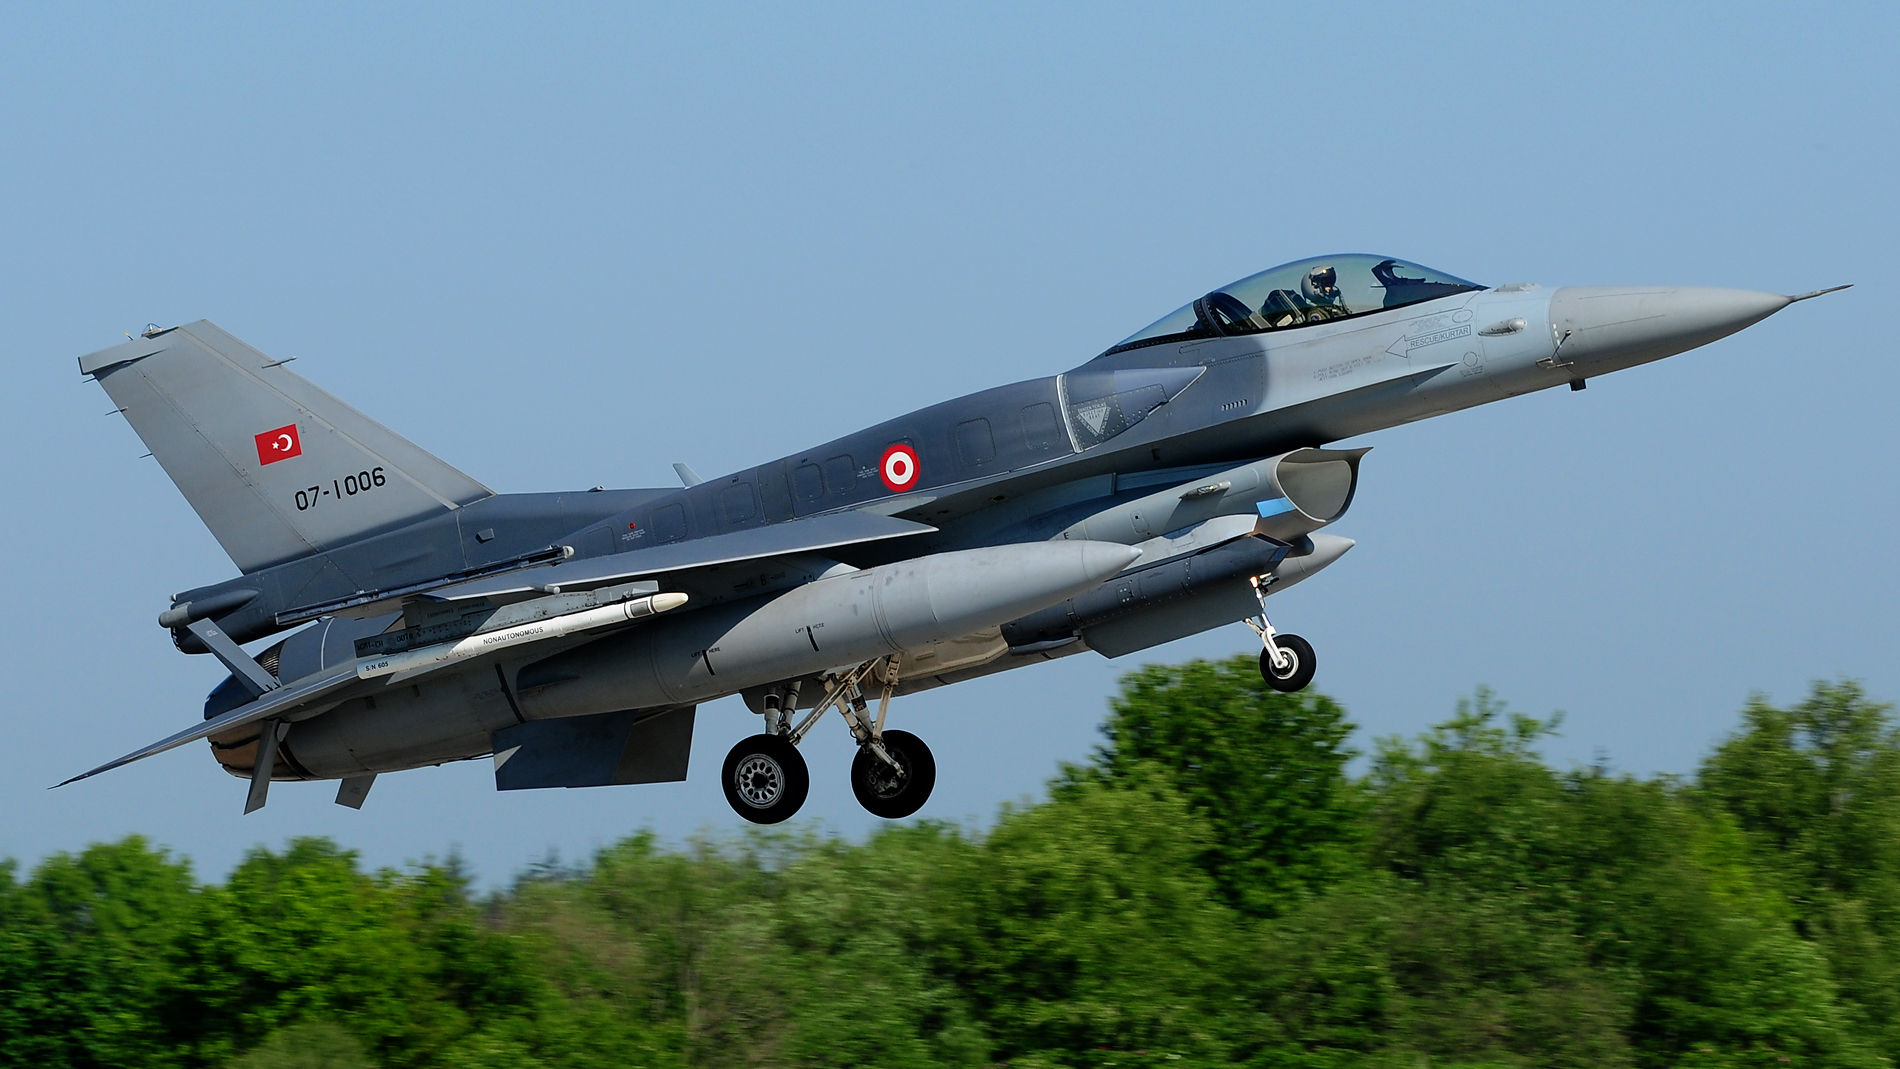 Turkish Air Force 07-1006